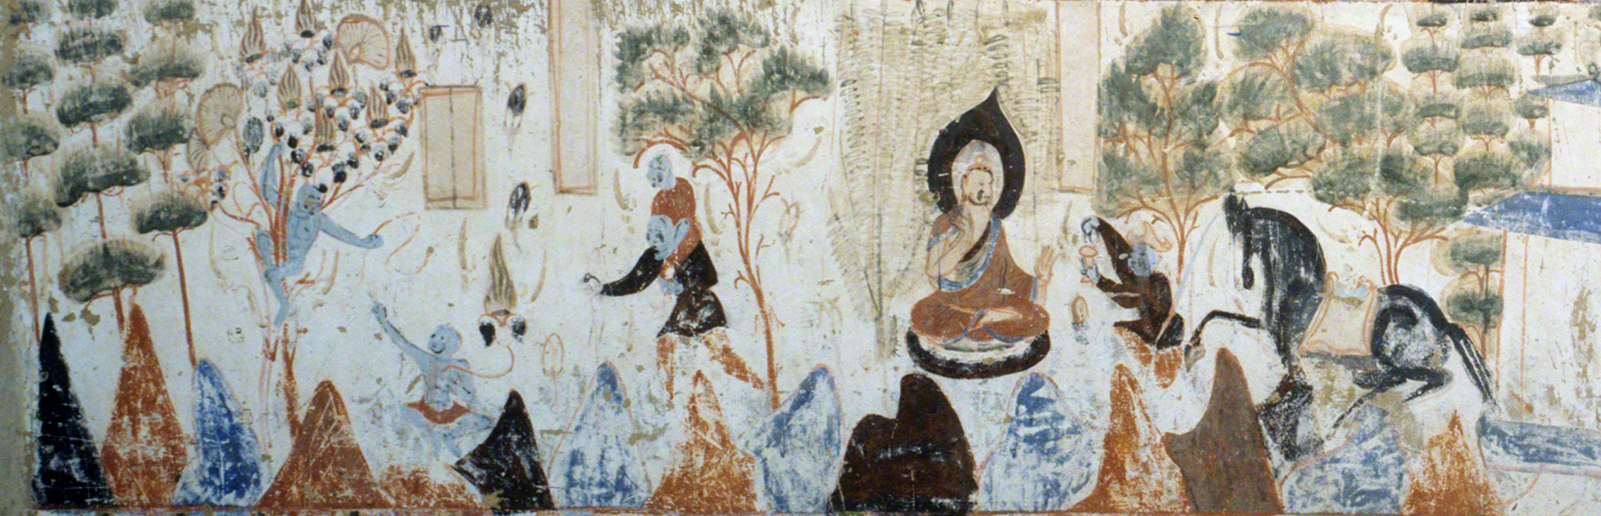 Detail of the left side of the third register of the Mahasattva jataka painting.   Mogao Cave 428. Northern Zhou, 557-581 CE. Dunhuang. Image courtesy of the Dunhuang Academy.